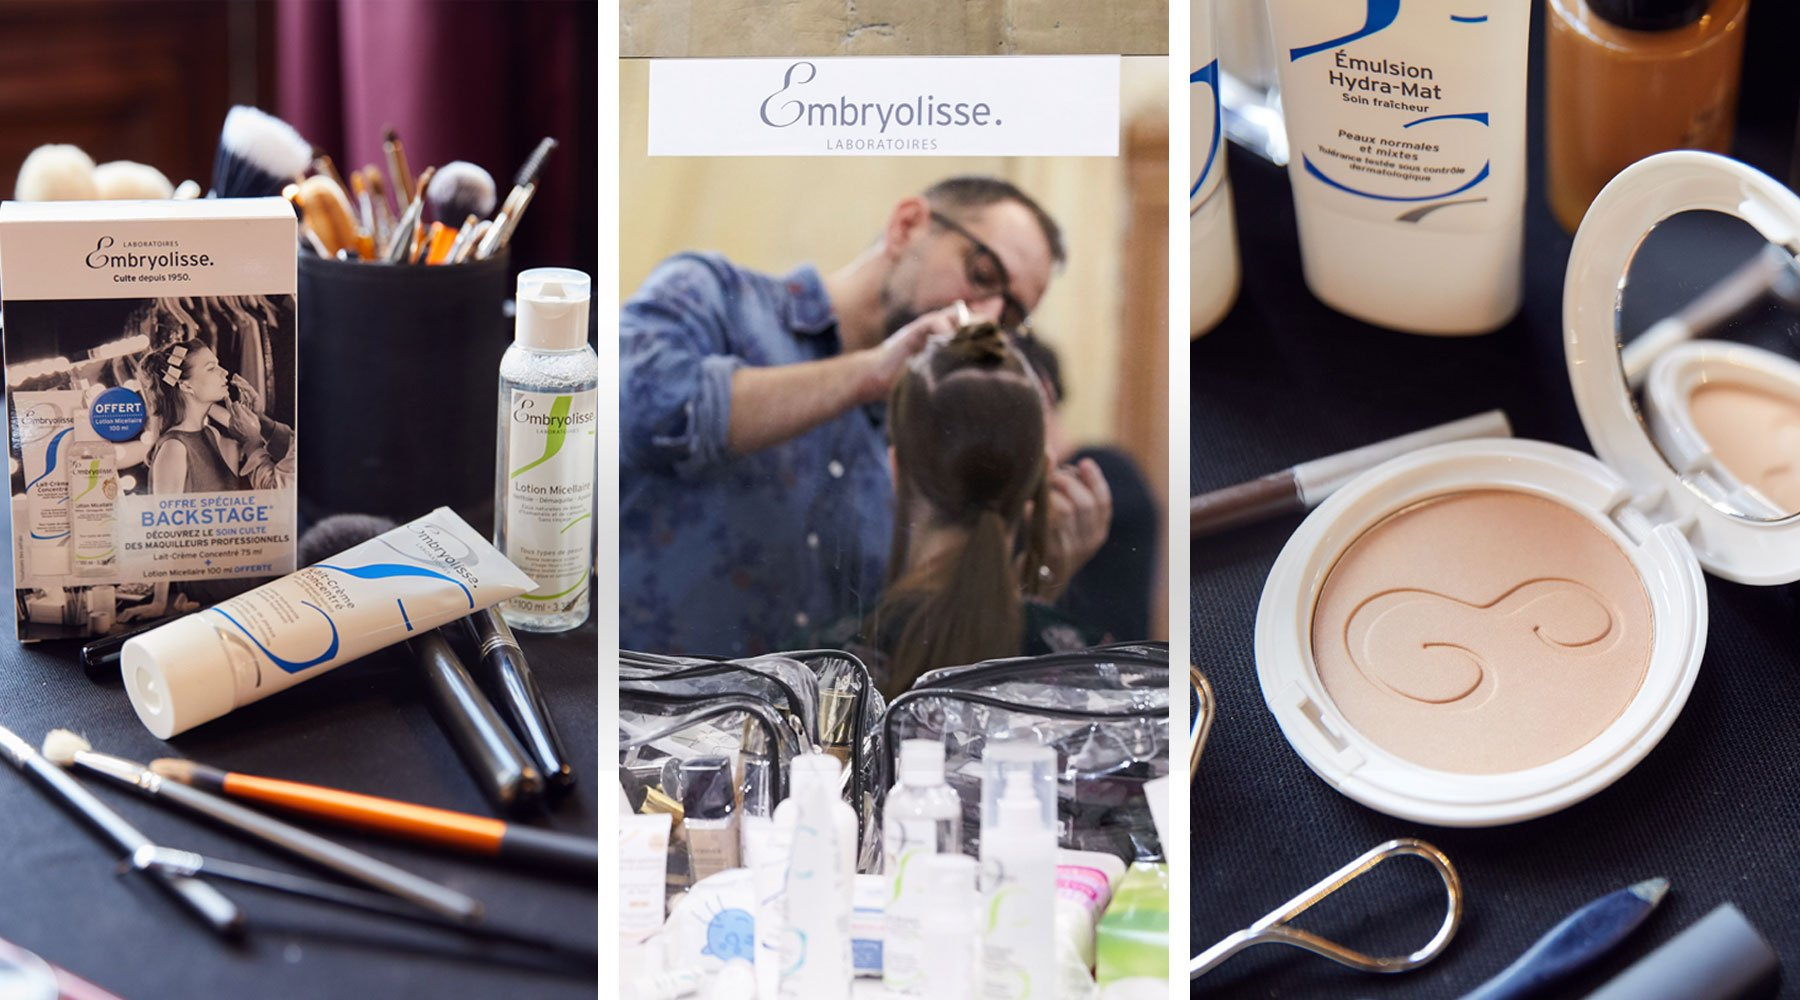 Rendez-vous en backstages de la Paris Fashion Week - Magazine - embryolisse